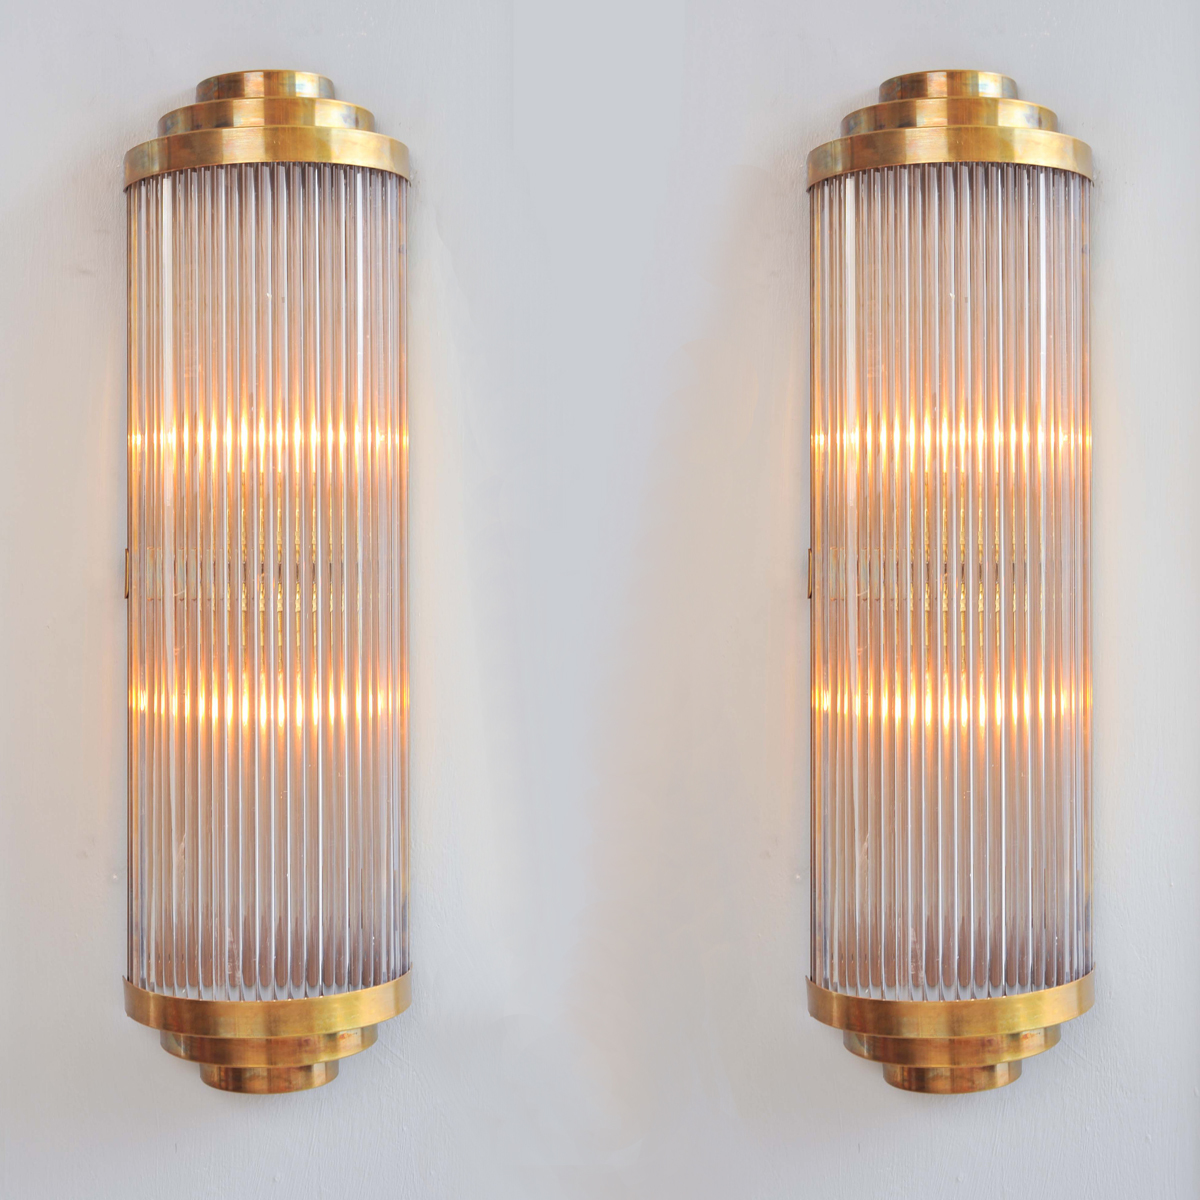 Valerie Wade Lw612 Ravello Wall Lights 01